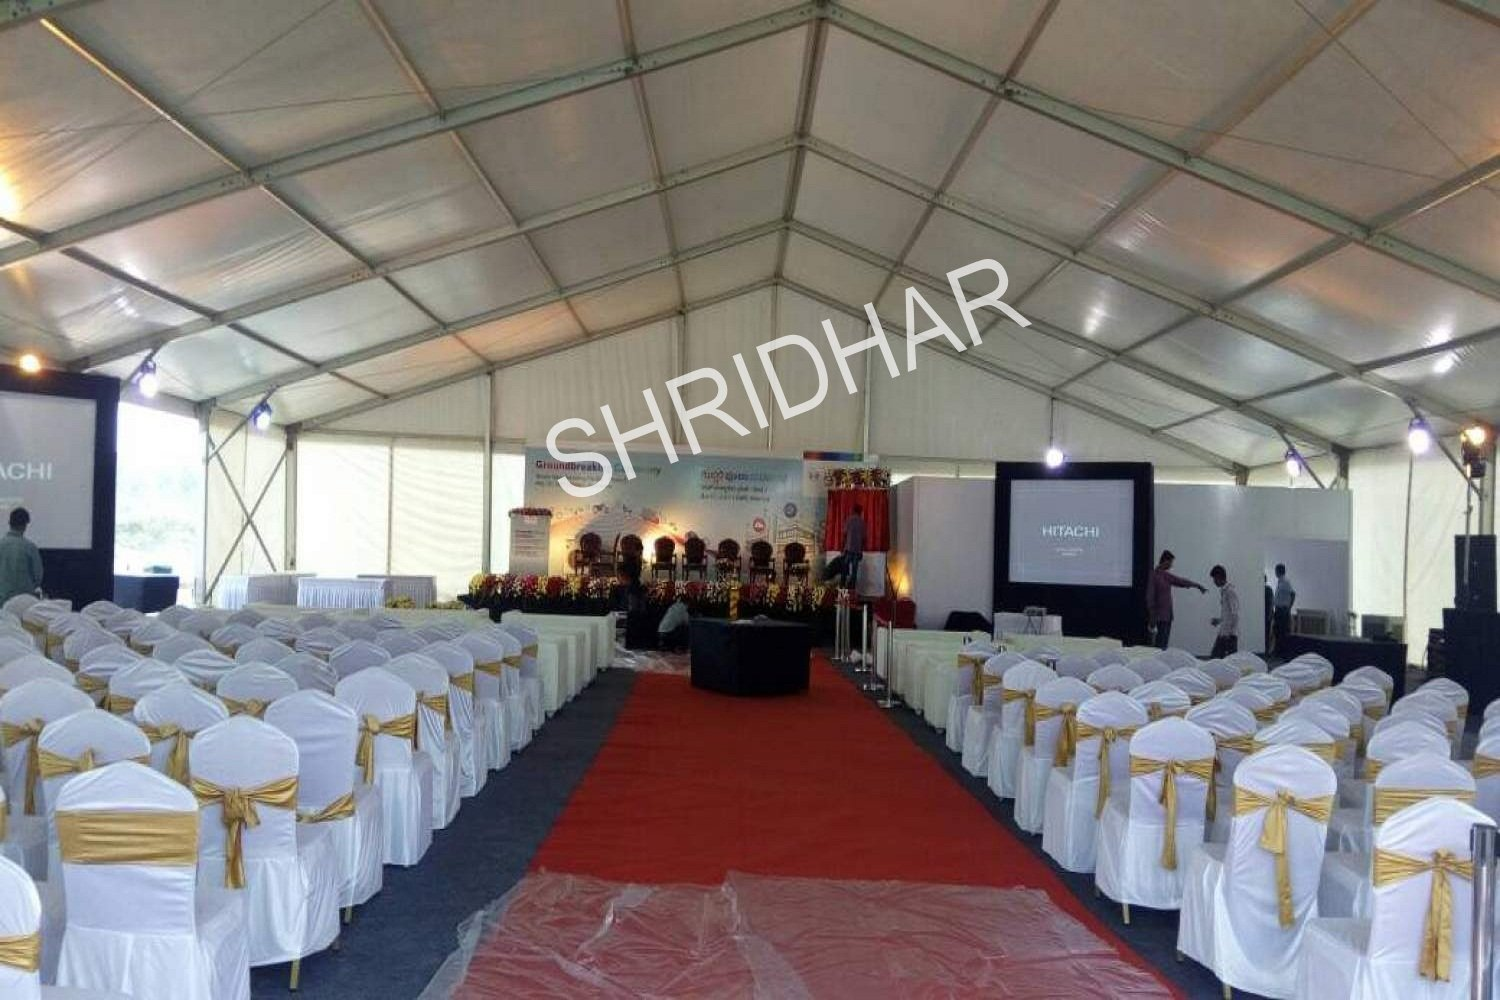 synthetic red carpets banquet chairs for rent for conferences in bangalore shridhar tent house